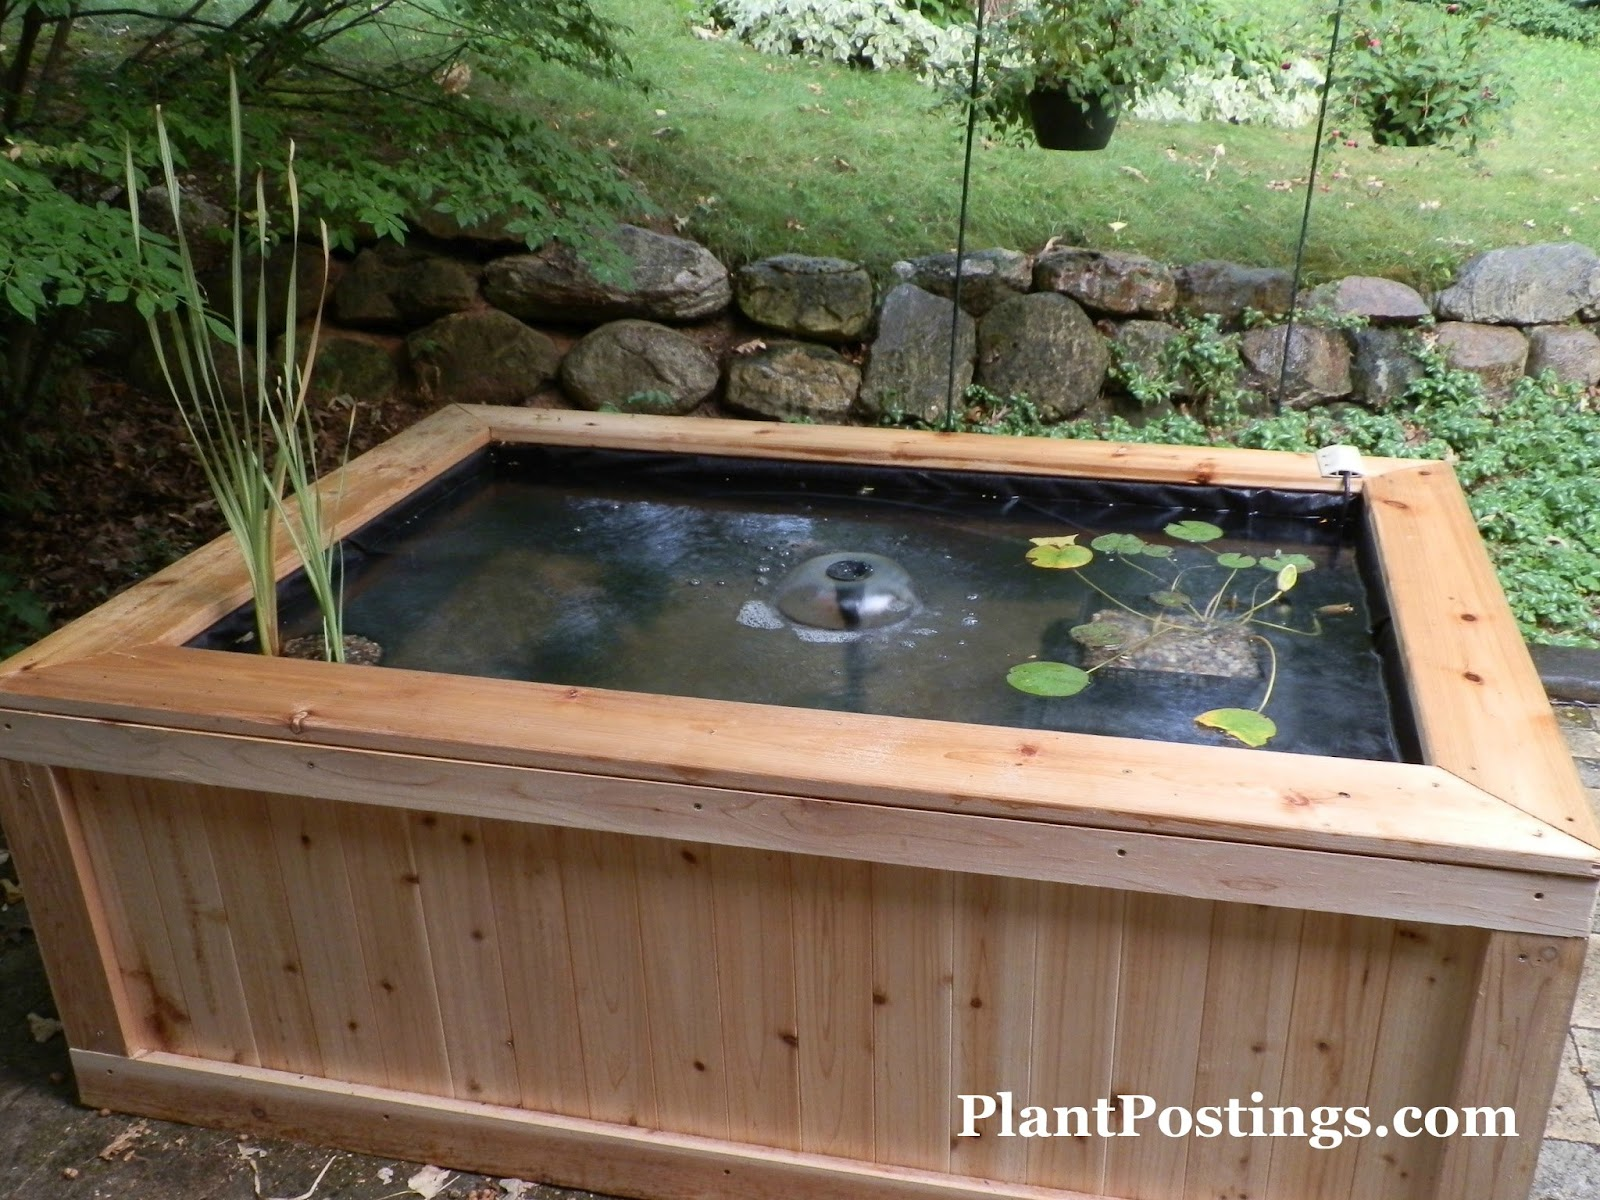 Plantpostings how to make an above ground pond for Outdoor goldfish for sale